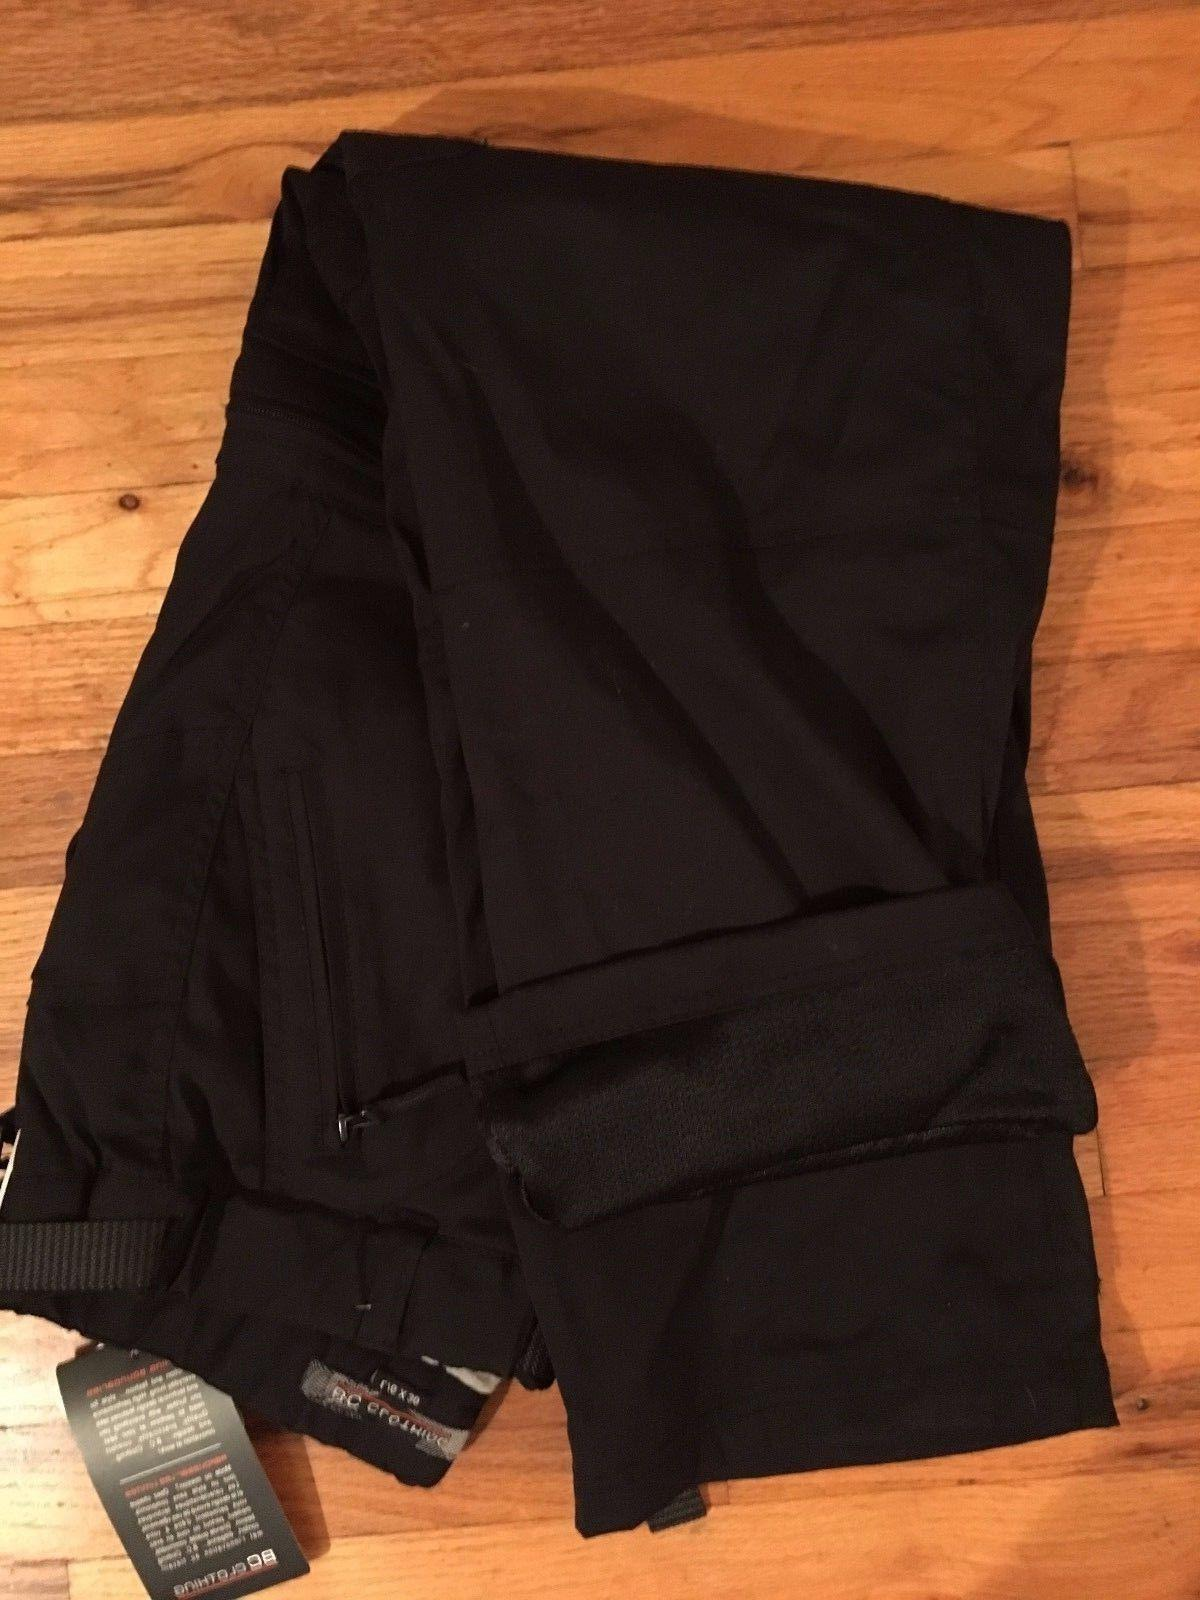 NWT BC Clothing Men's Black Lined Work Snow LG-30